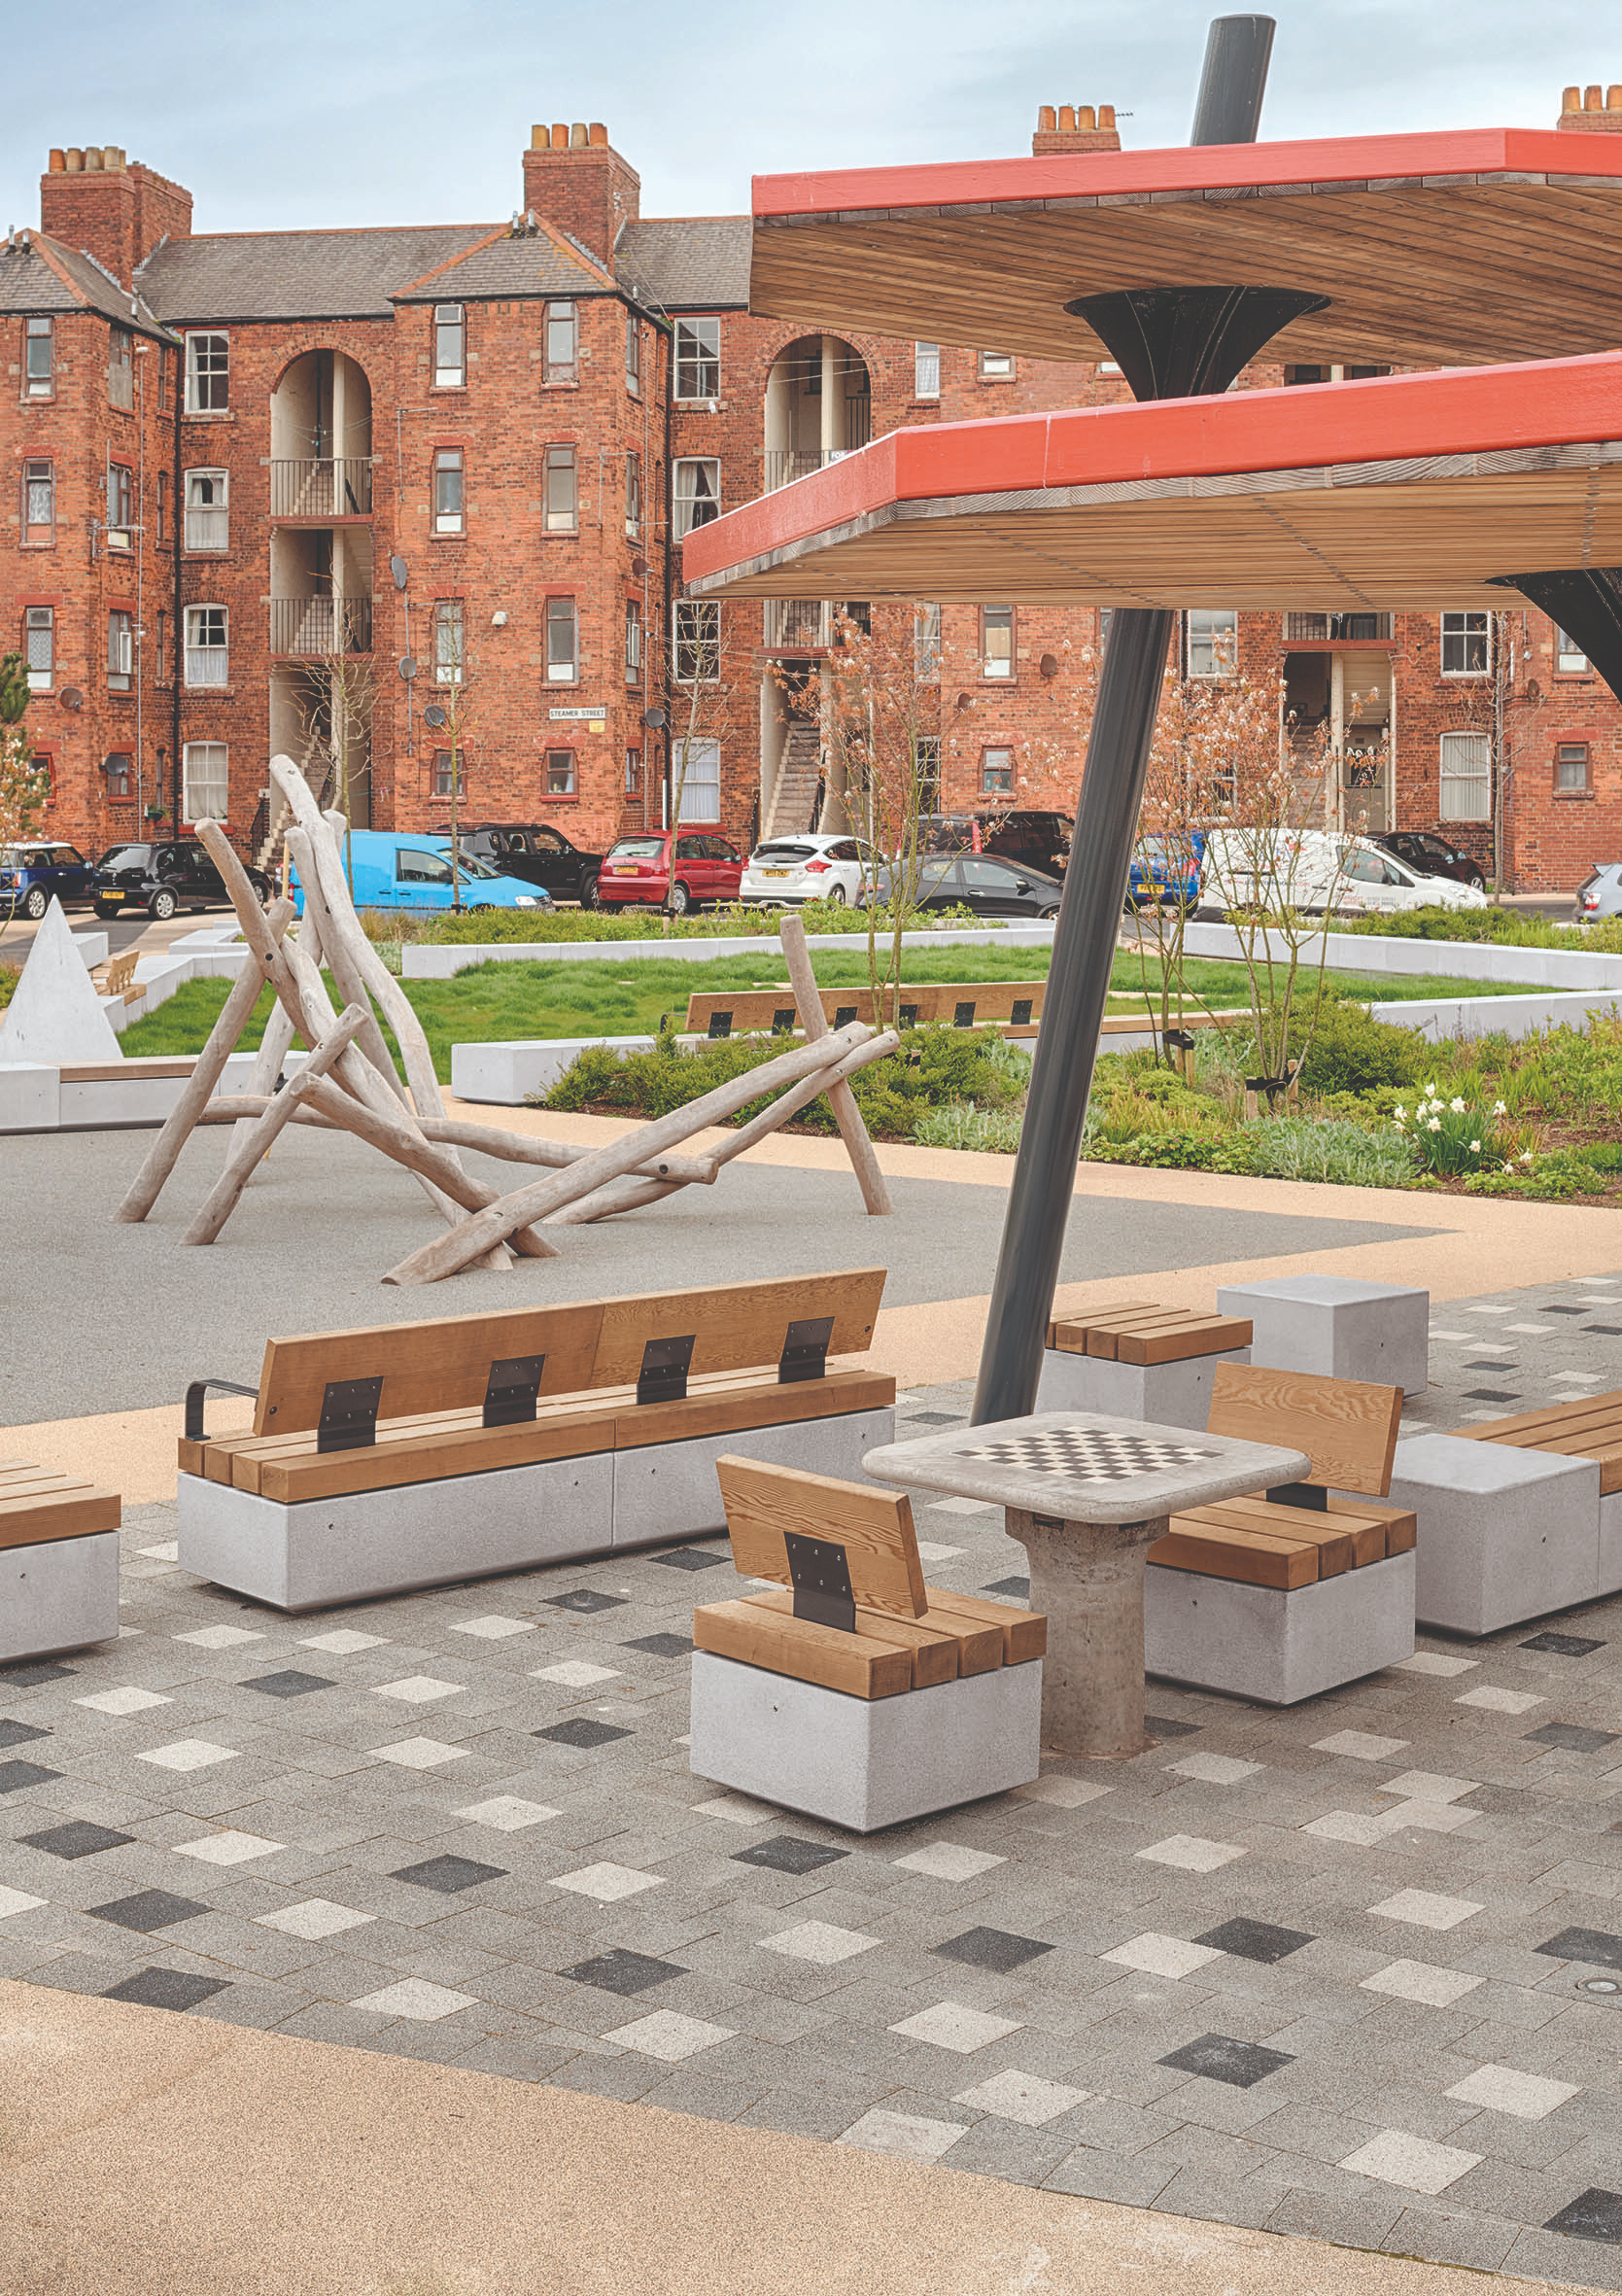 Seating elements encourage local families to socialise